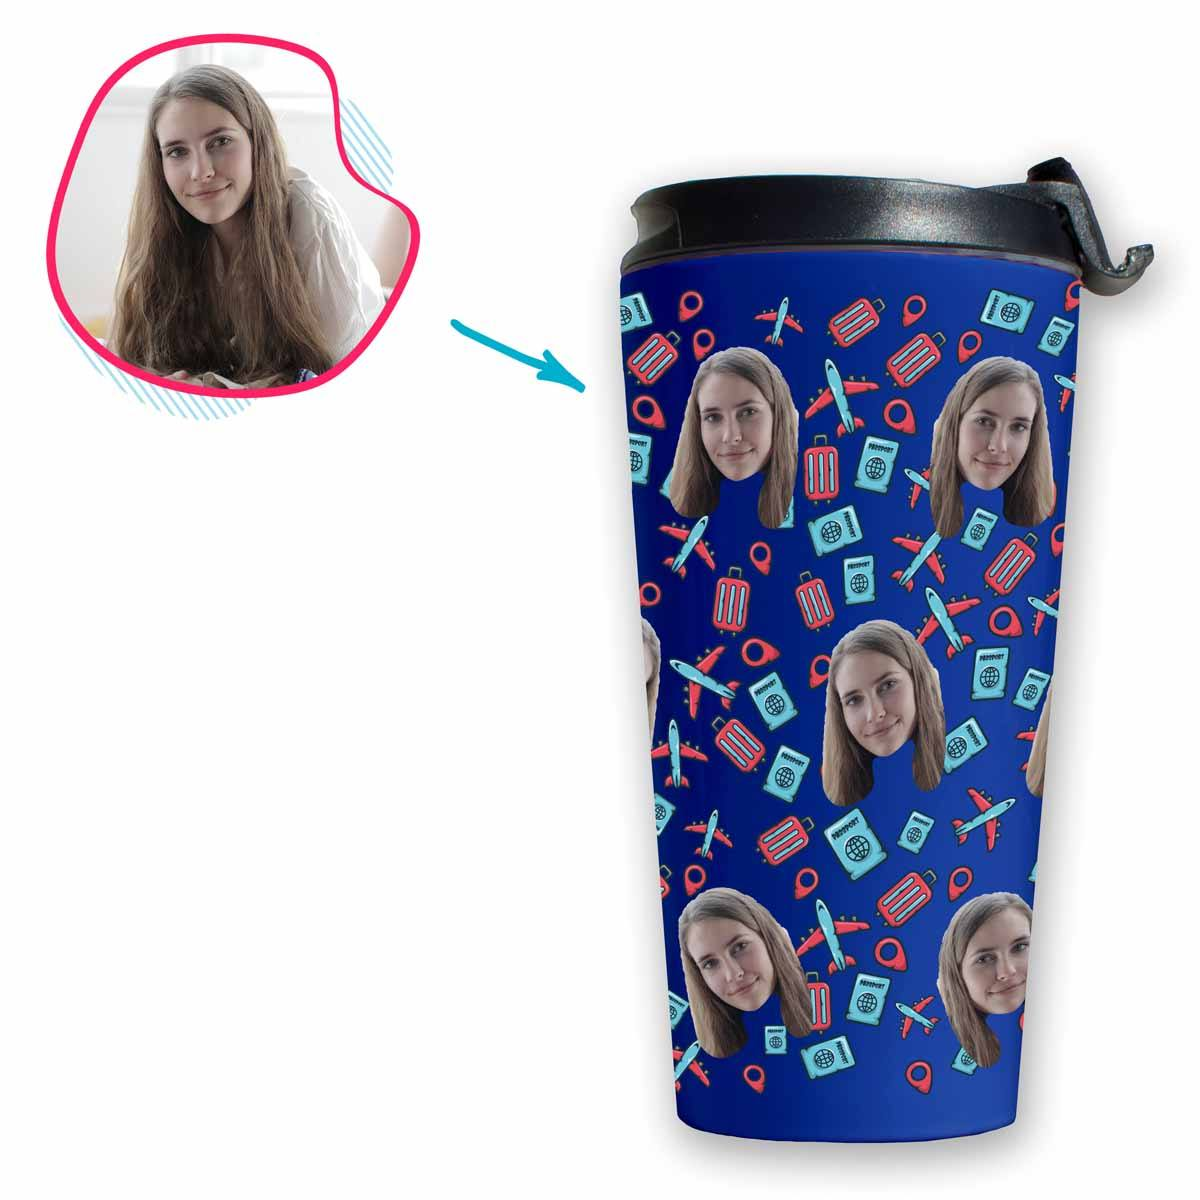 darkblue Traveler travel mug personalized with photo of face printed on it